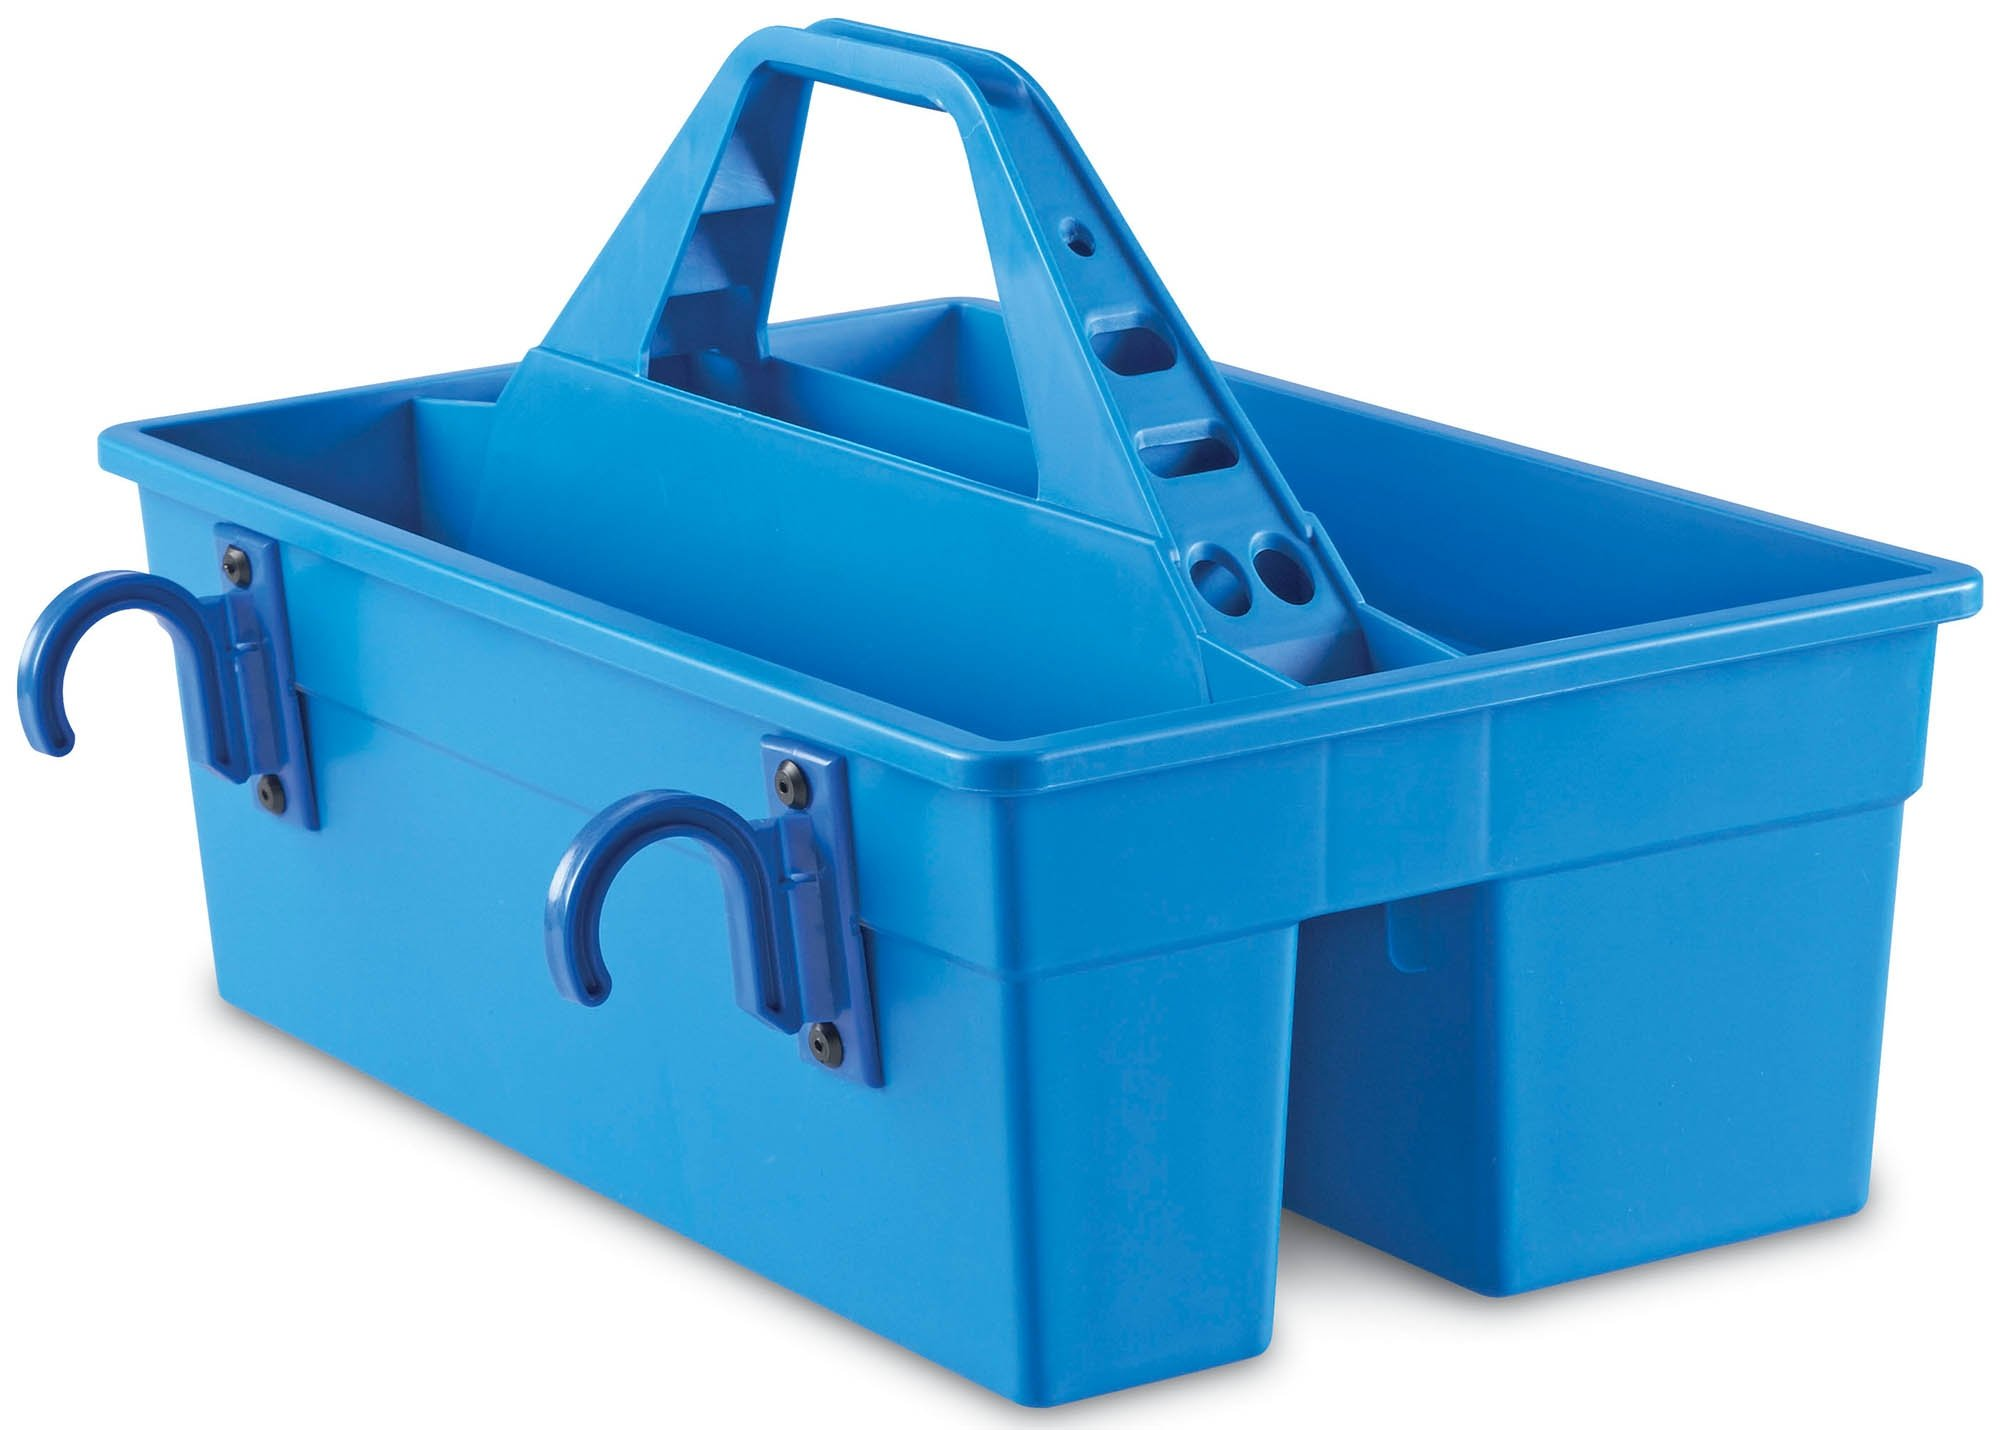 ToteMax Blood Collection Tray - Blue